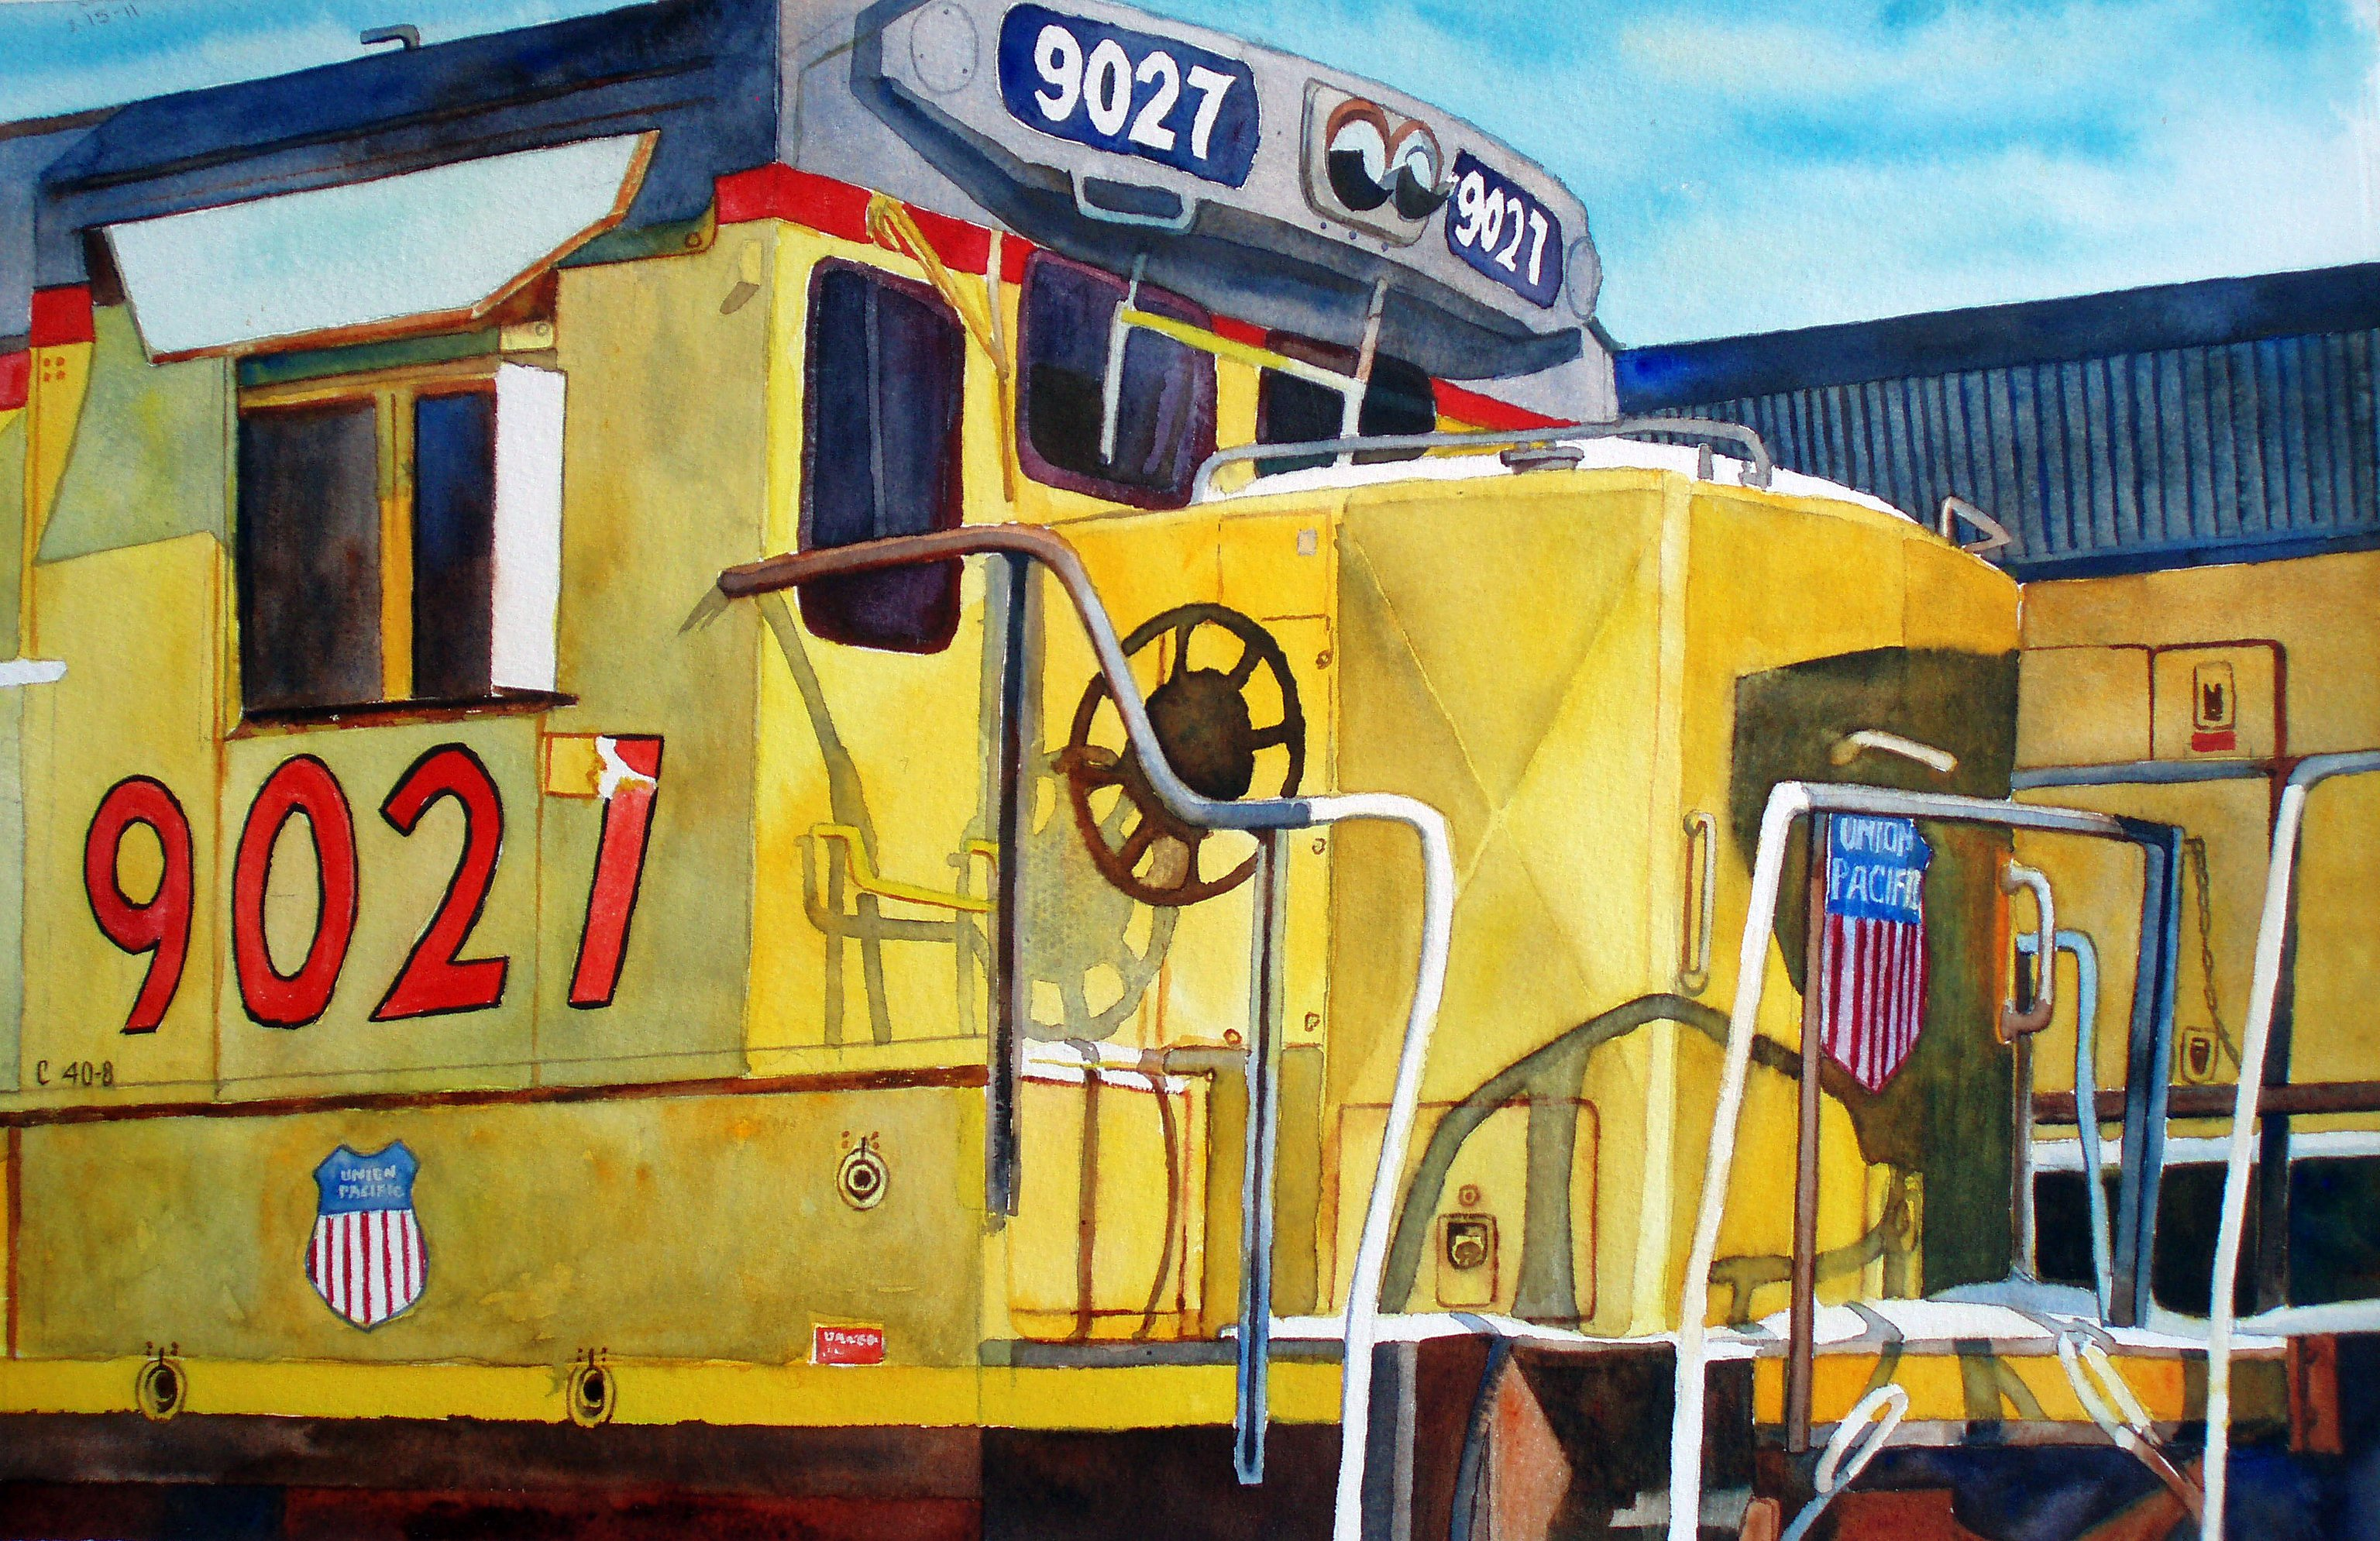 Union Pacific Engine 9027